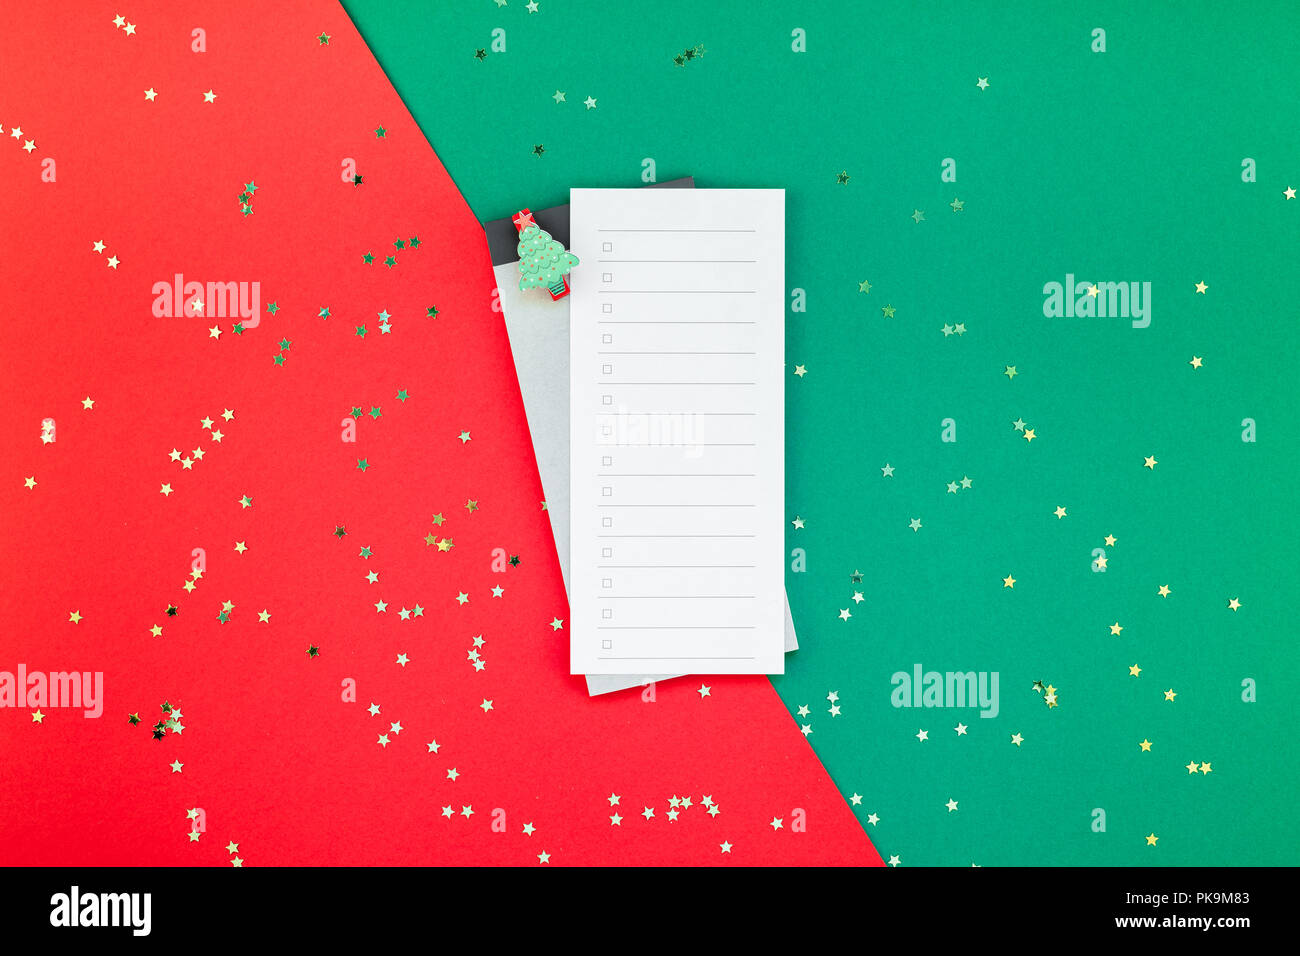 Schedule Table Event Planner Concept Stockfotos & Schedule Table ...